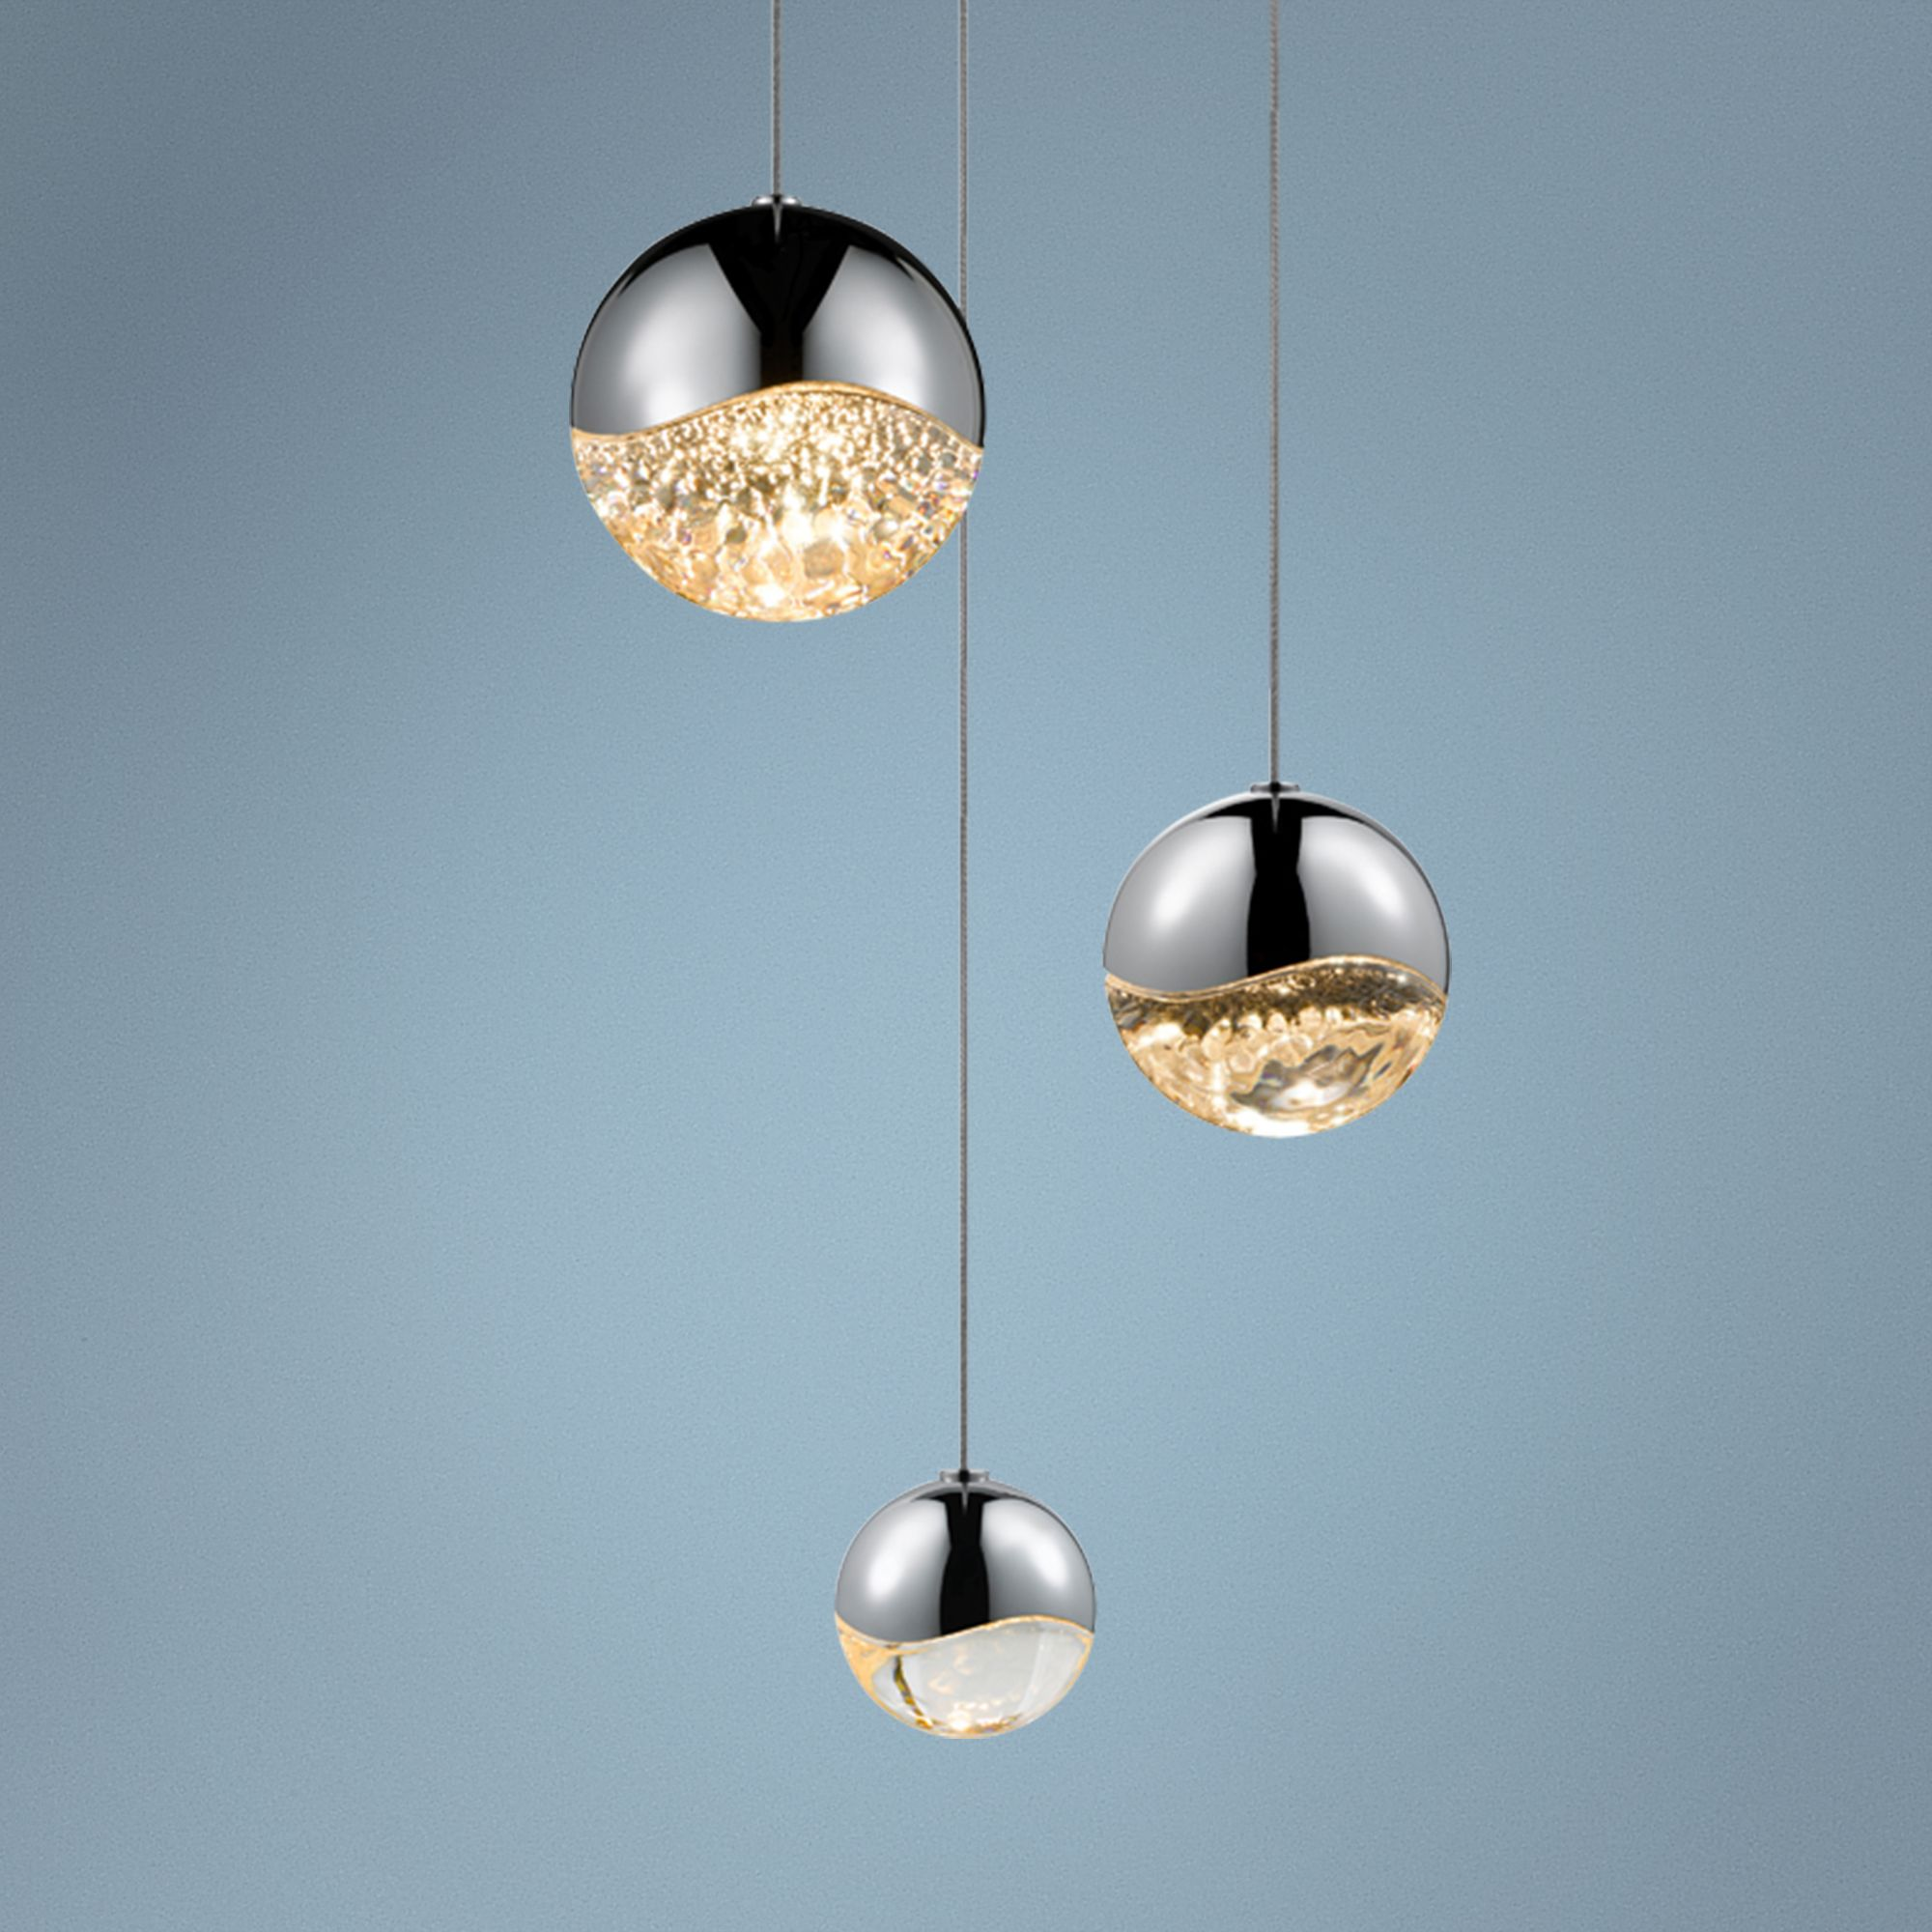 Sonneman LightingSonneman Design Group Sonneman Lighting